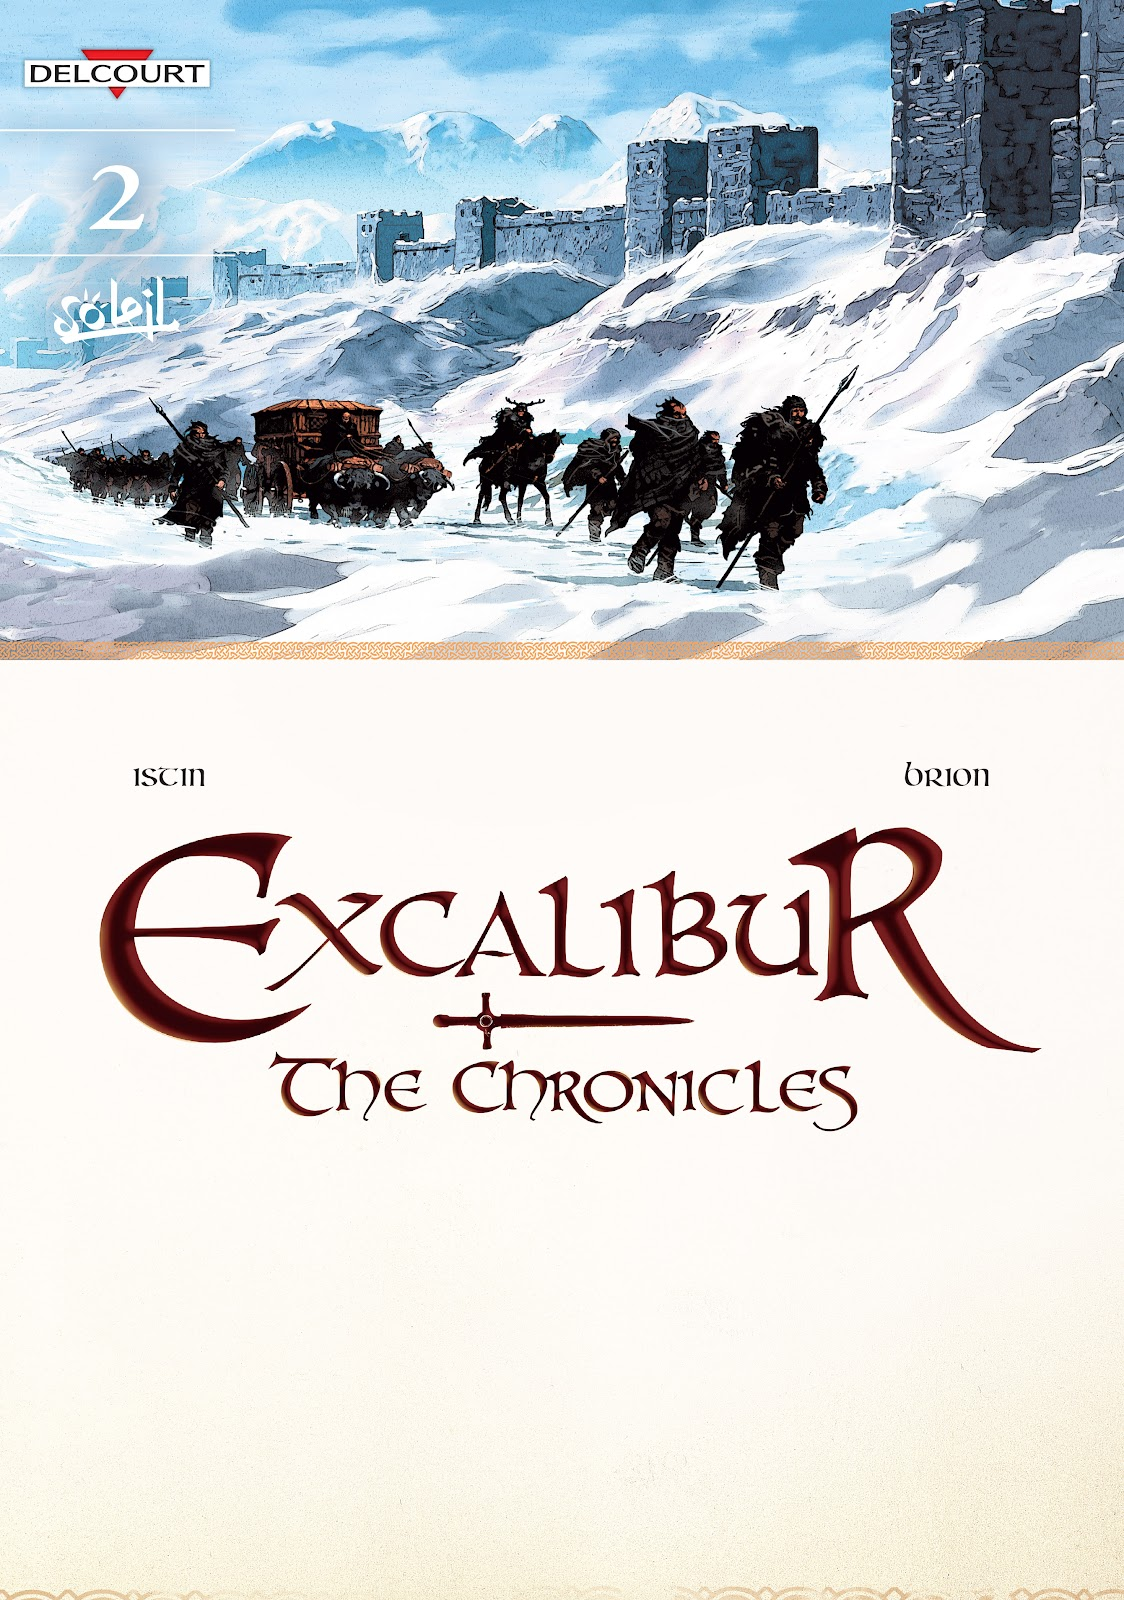 Excalibur - The Chronicles 2 Page 1